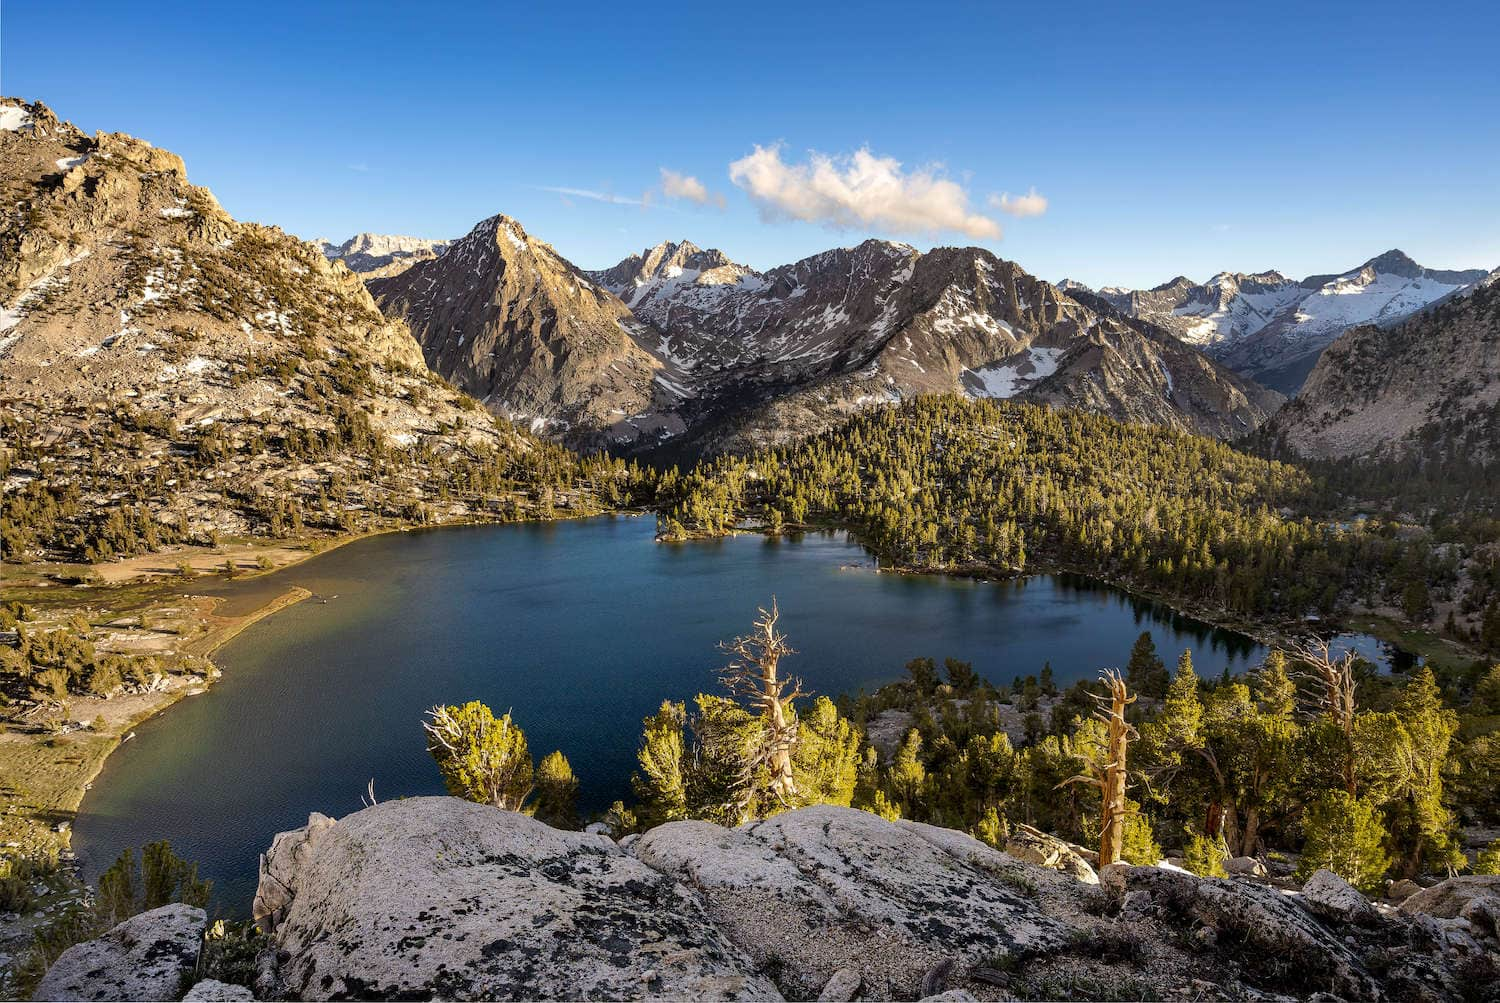 How To Resupply on the John Muir Trail